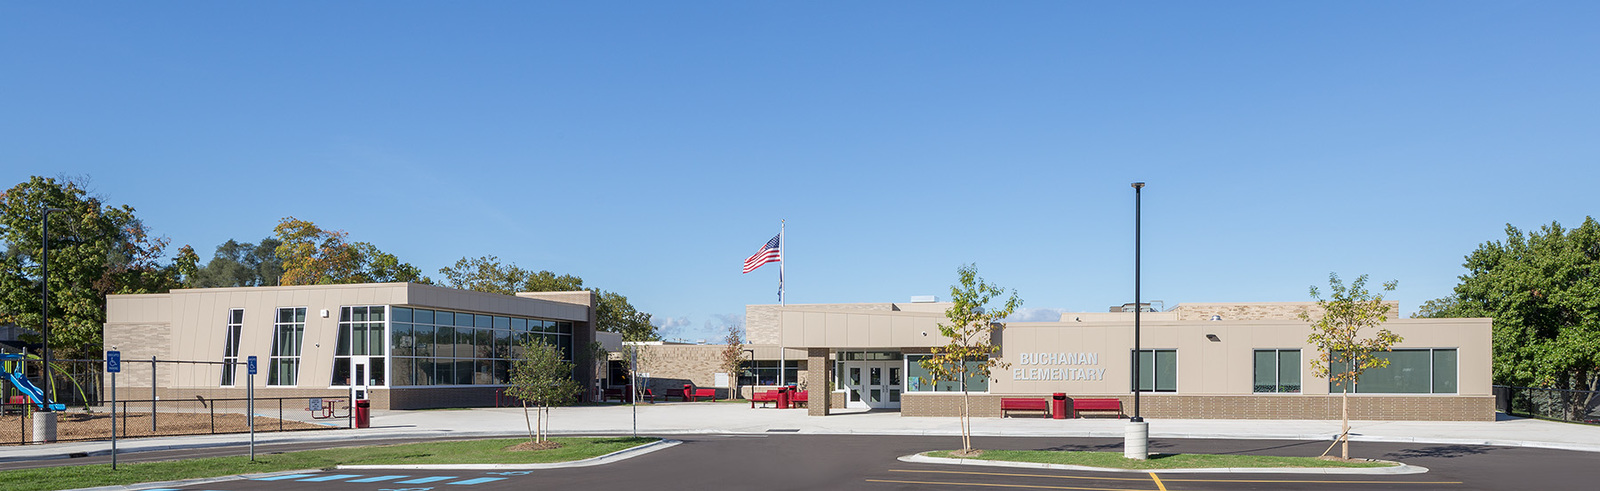 Photo for my Grand Rapids Public Schools, Buchanan Elementary